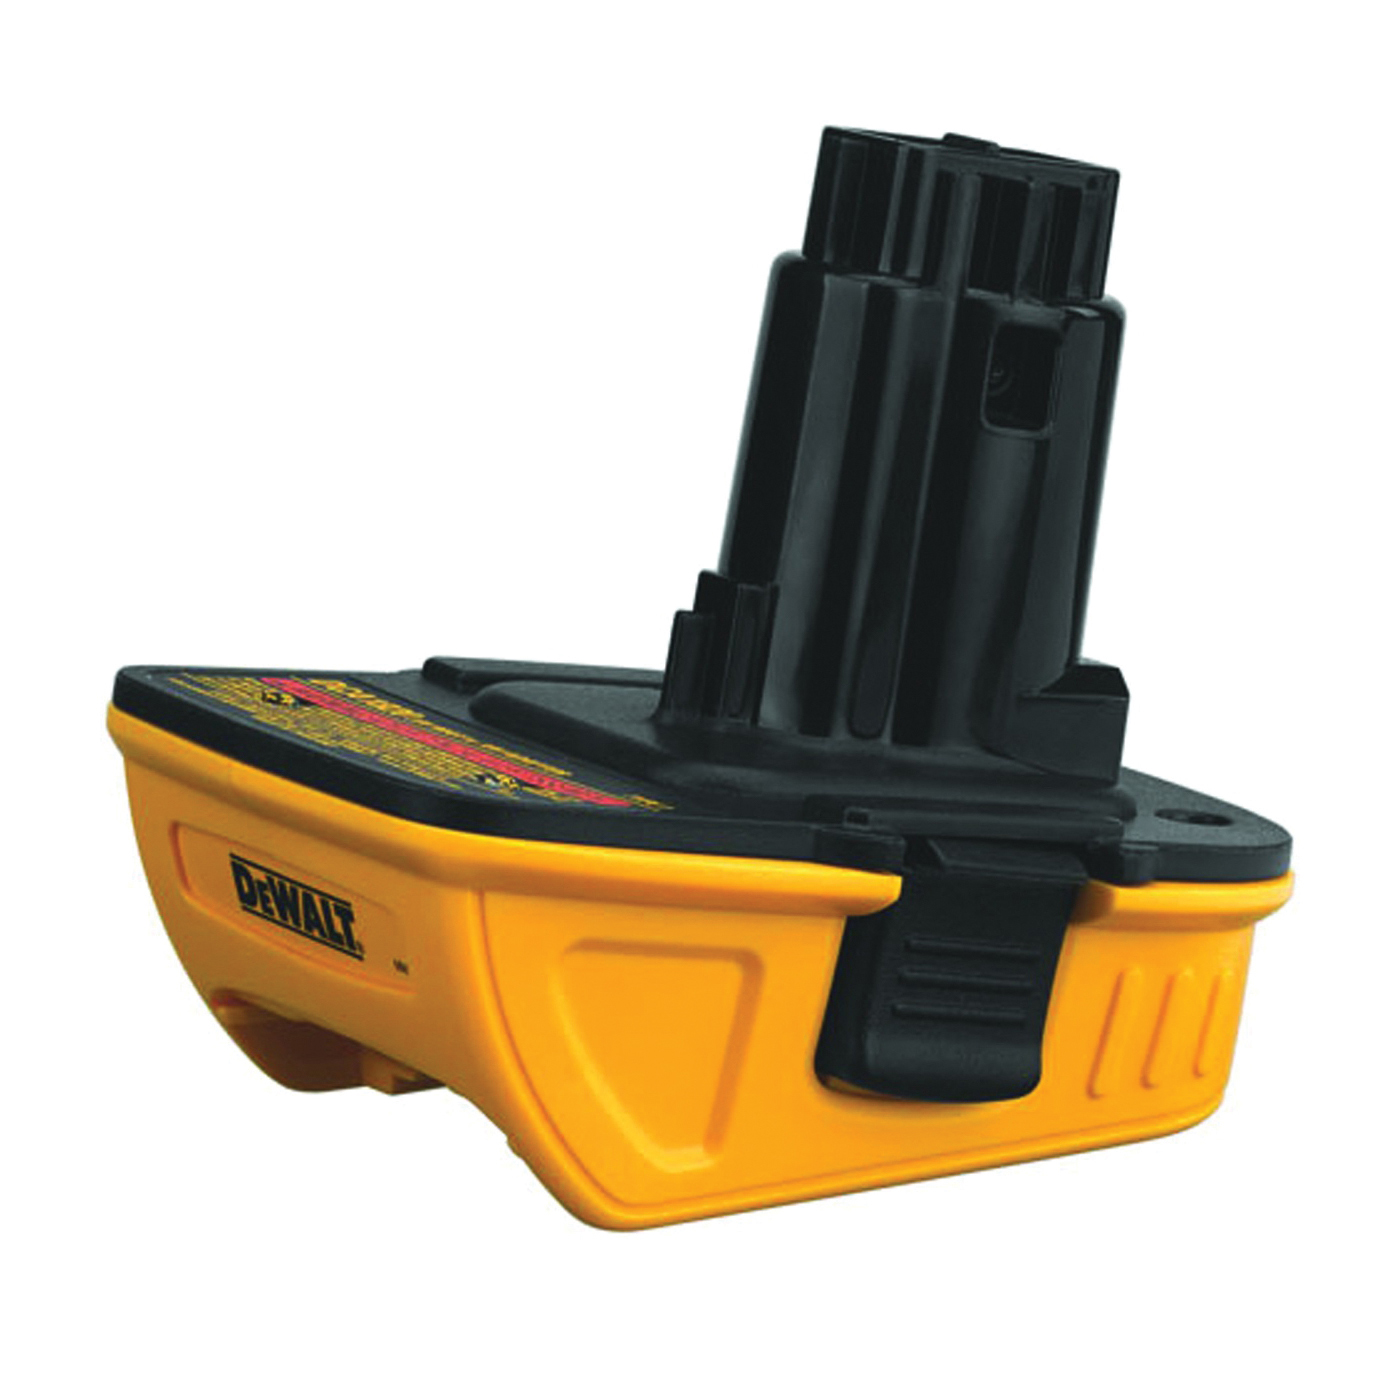 Picture of DeWALT DCA1820 Battery Adapter, Battery Included: No